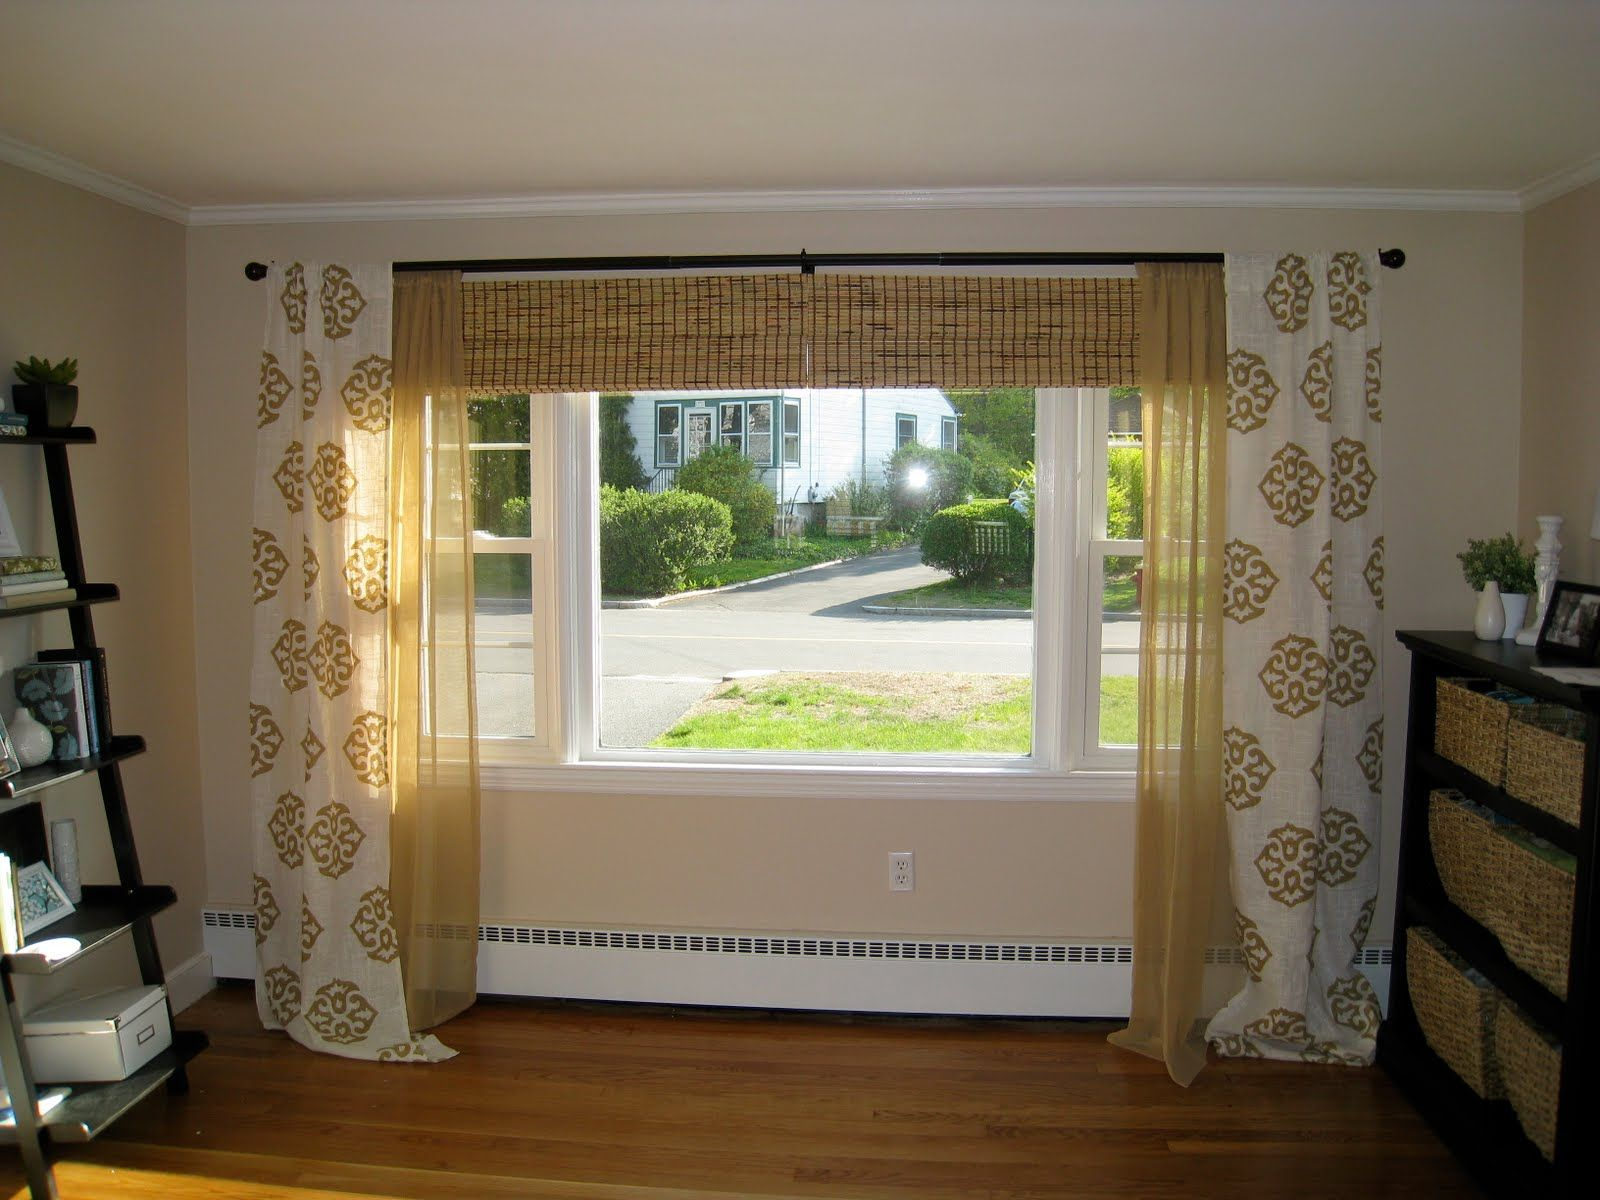 17 best ideas about 3 window curtains on pinterest bay window curtain inspiration bay window curtains and diy bay window blinds